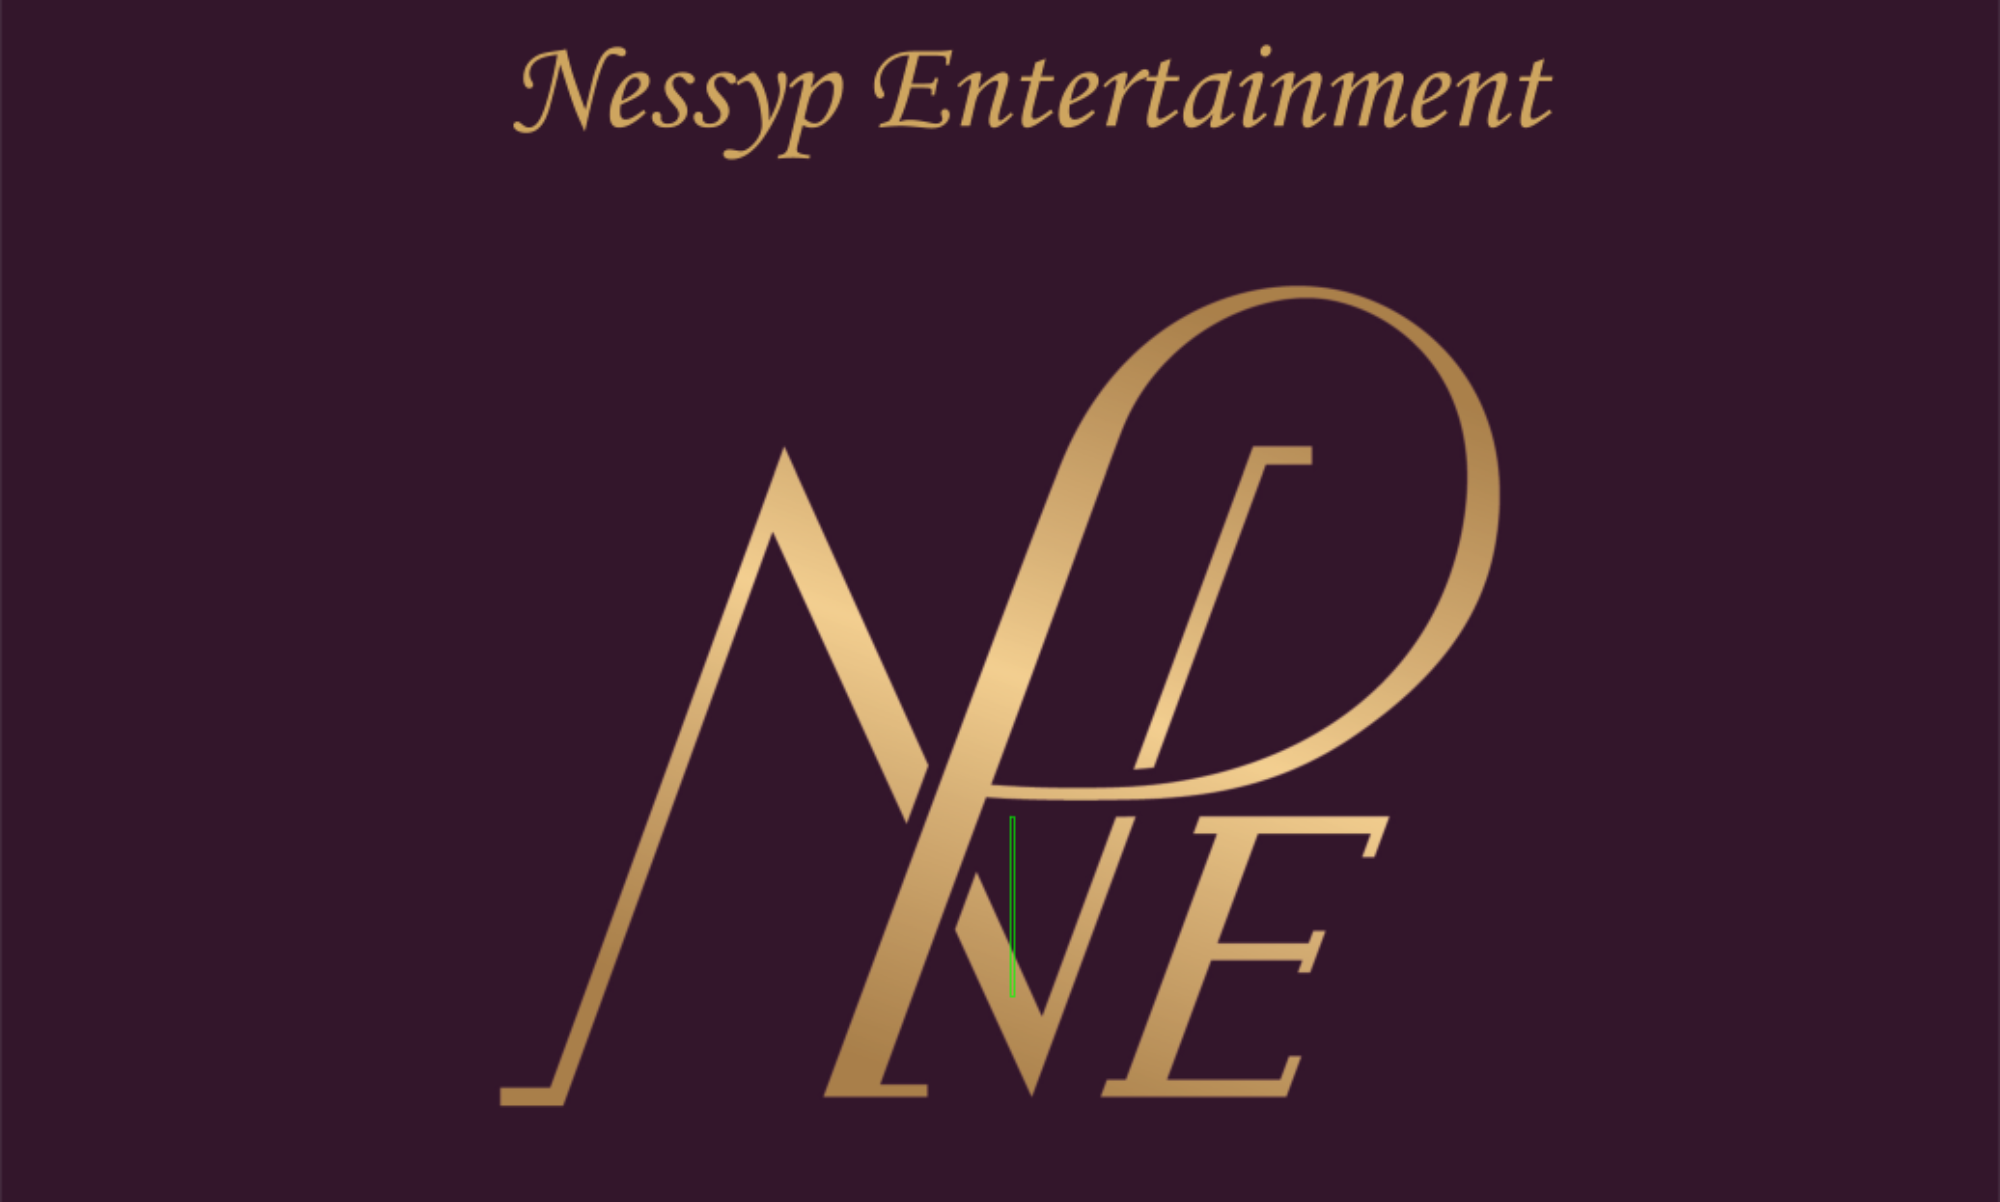 Nessyp Entertainment